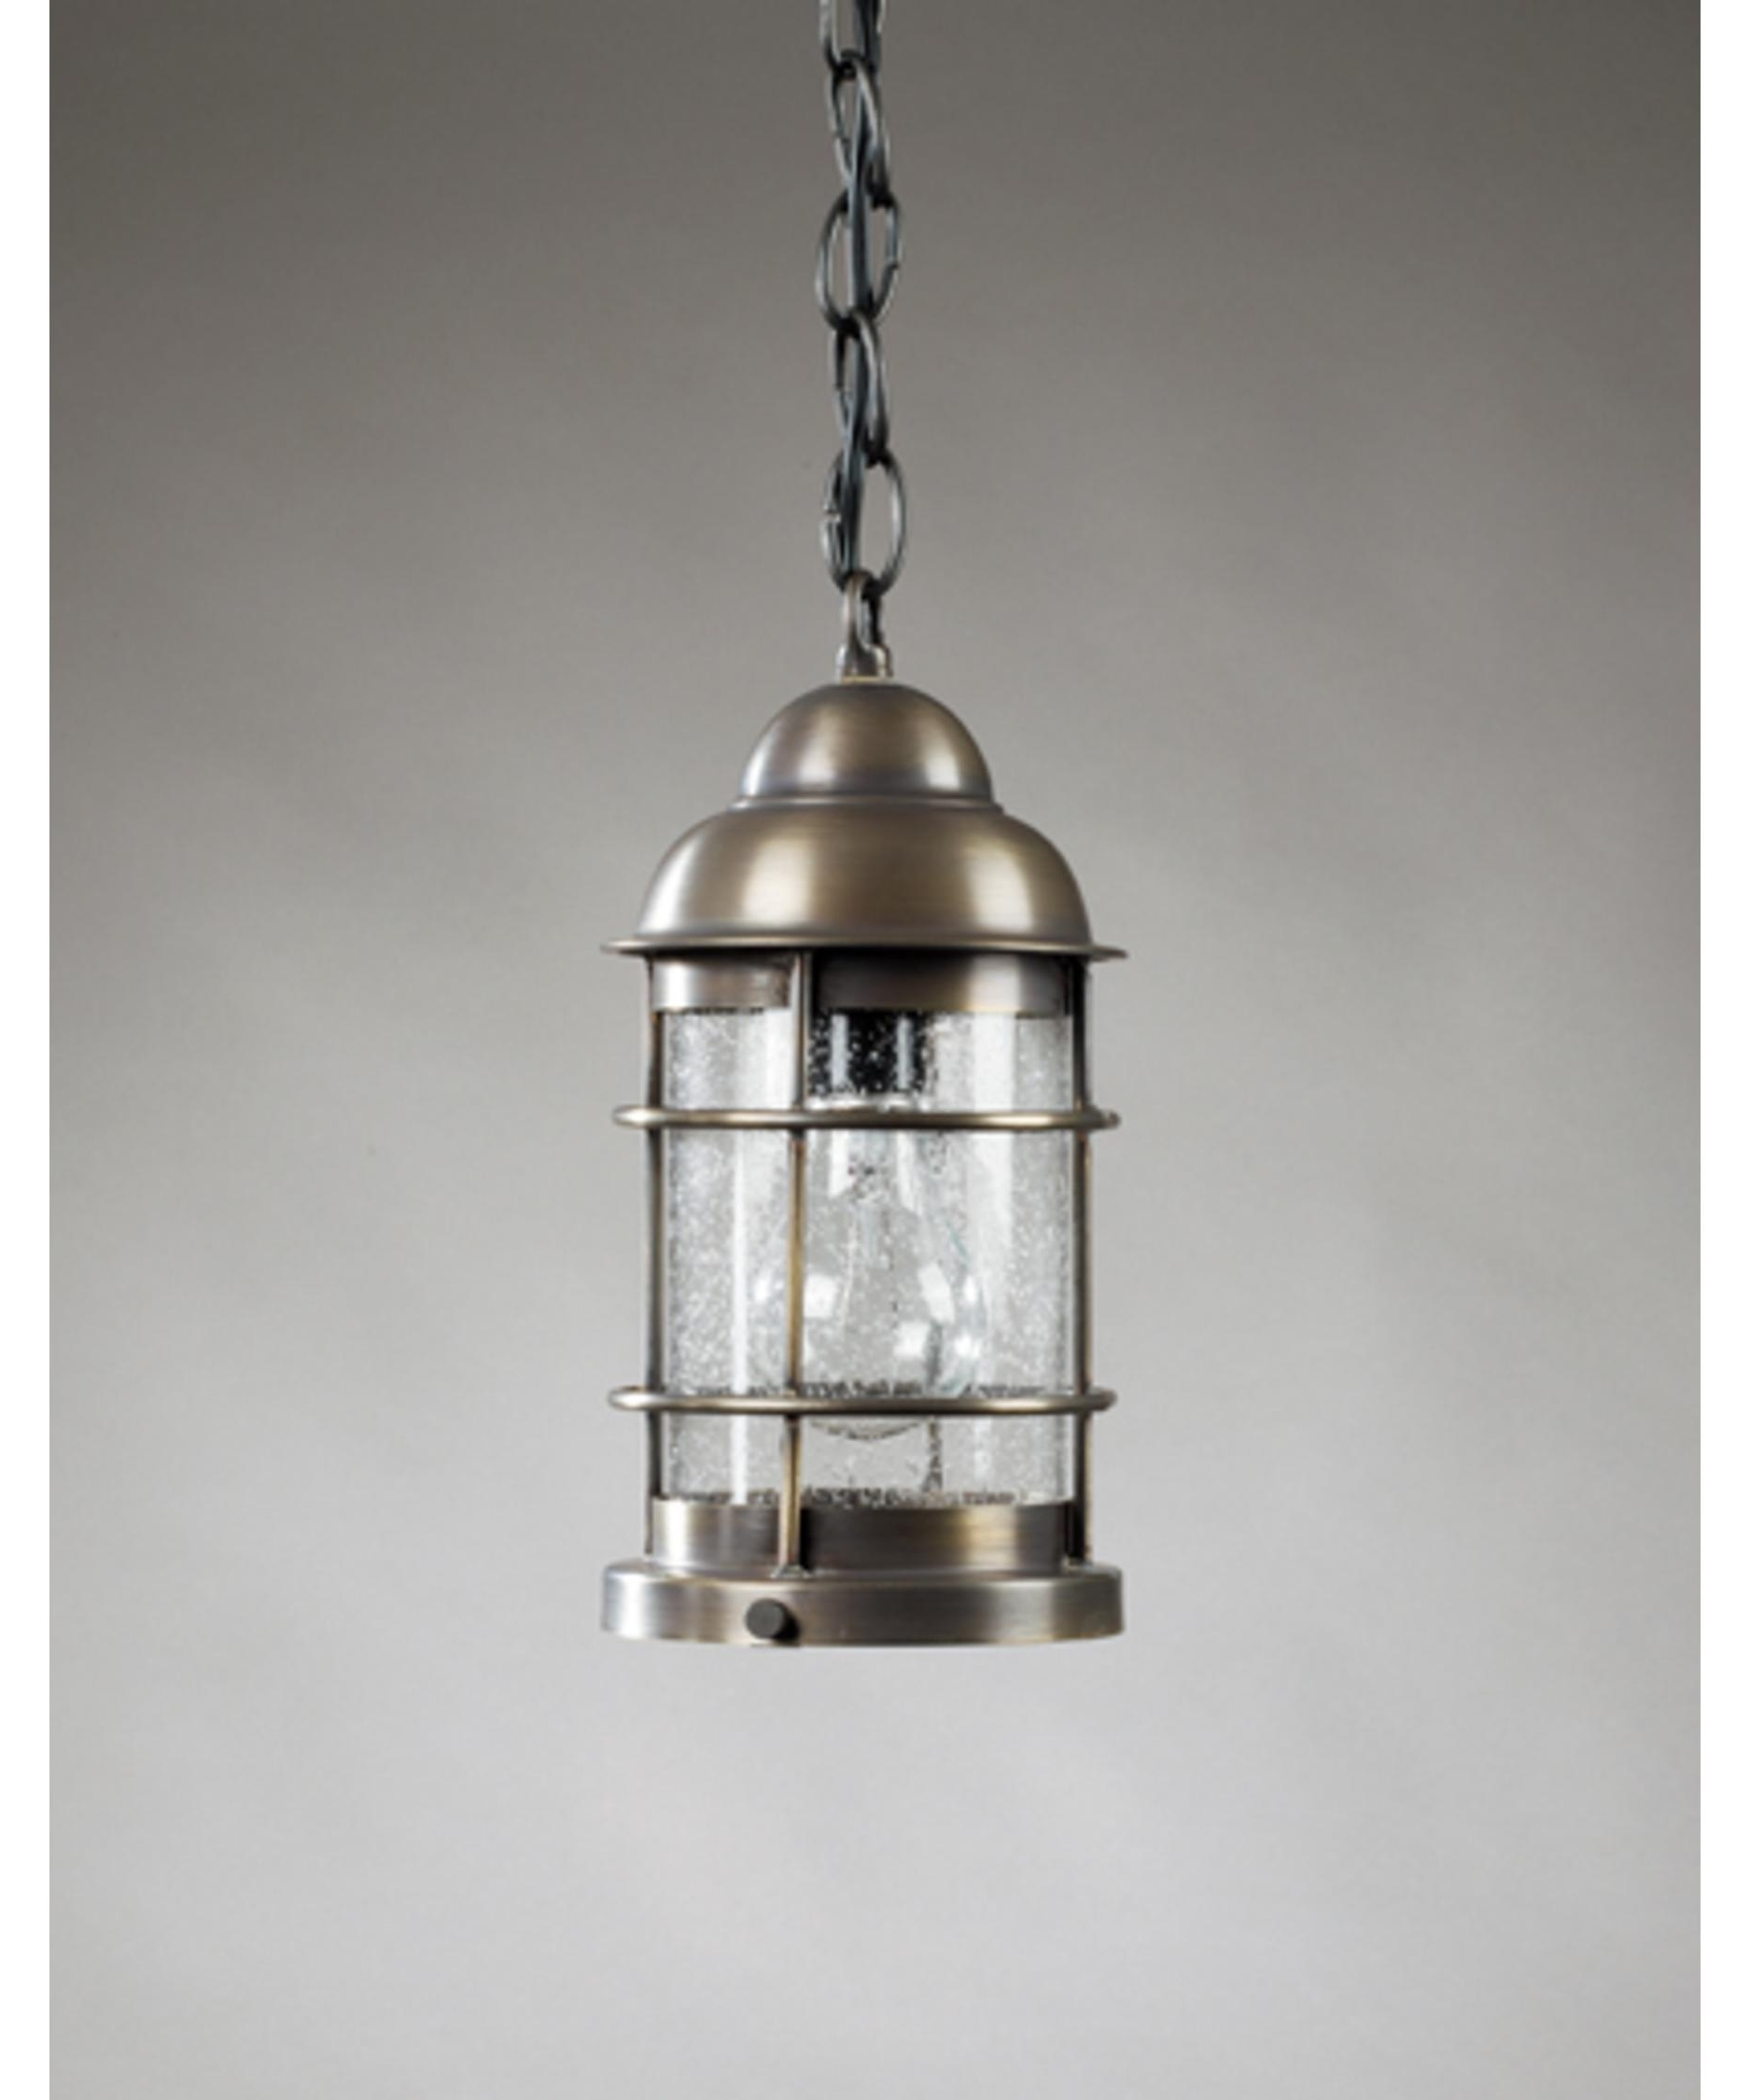 Northeast Lantern 3512 Med Nautical 6 Inch Wide 1 Light Outdoor With Regard To Most Recently Released Traditional Outdoor Ceiling Lights (View 8 of 20)